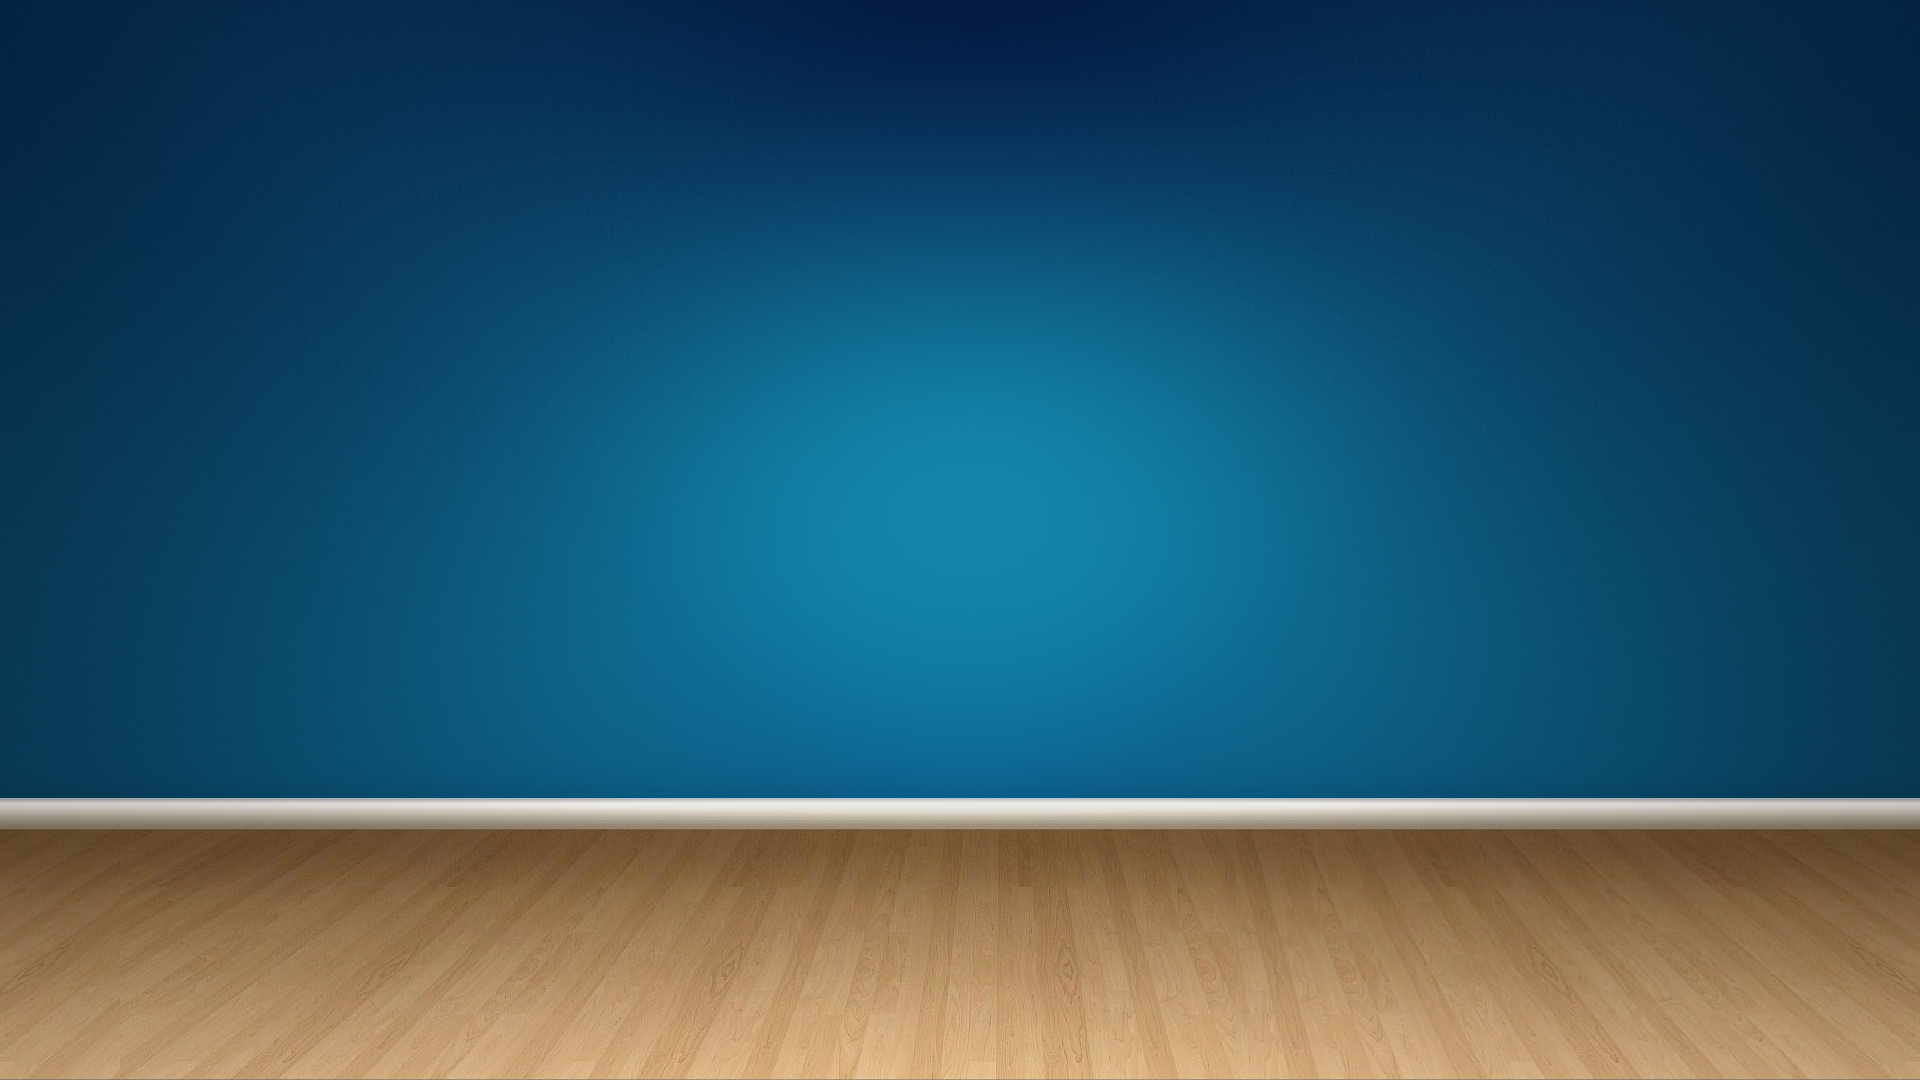 Blue wall and wood floor